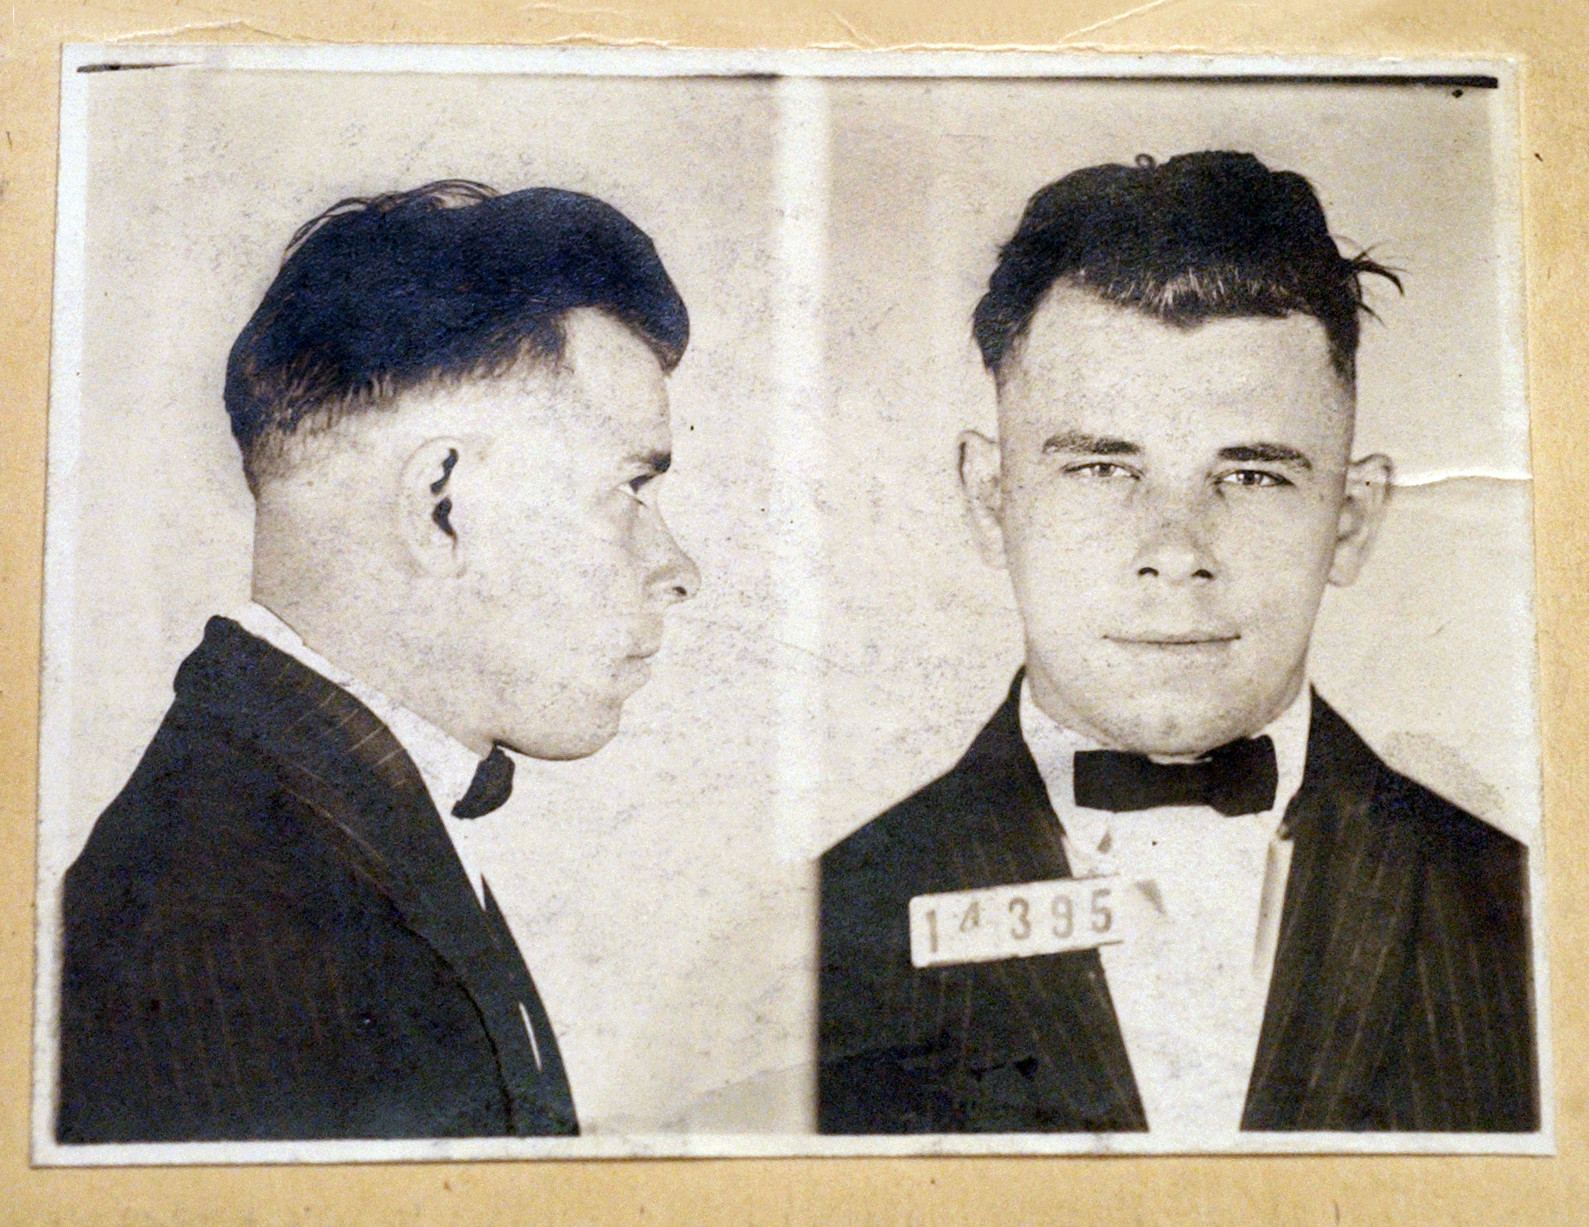 Lawsuit calling for remains of gangster John Dillinger to be exhumed tossed by Indiana judge